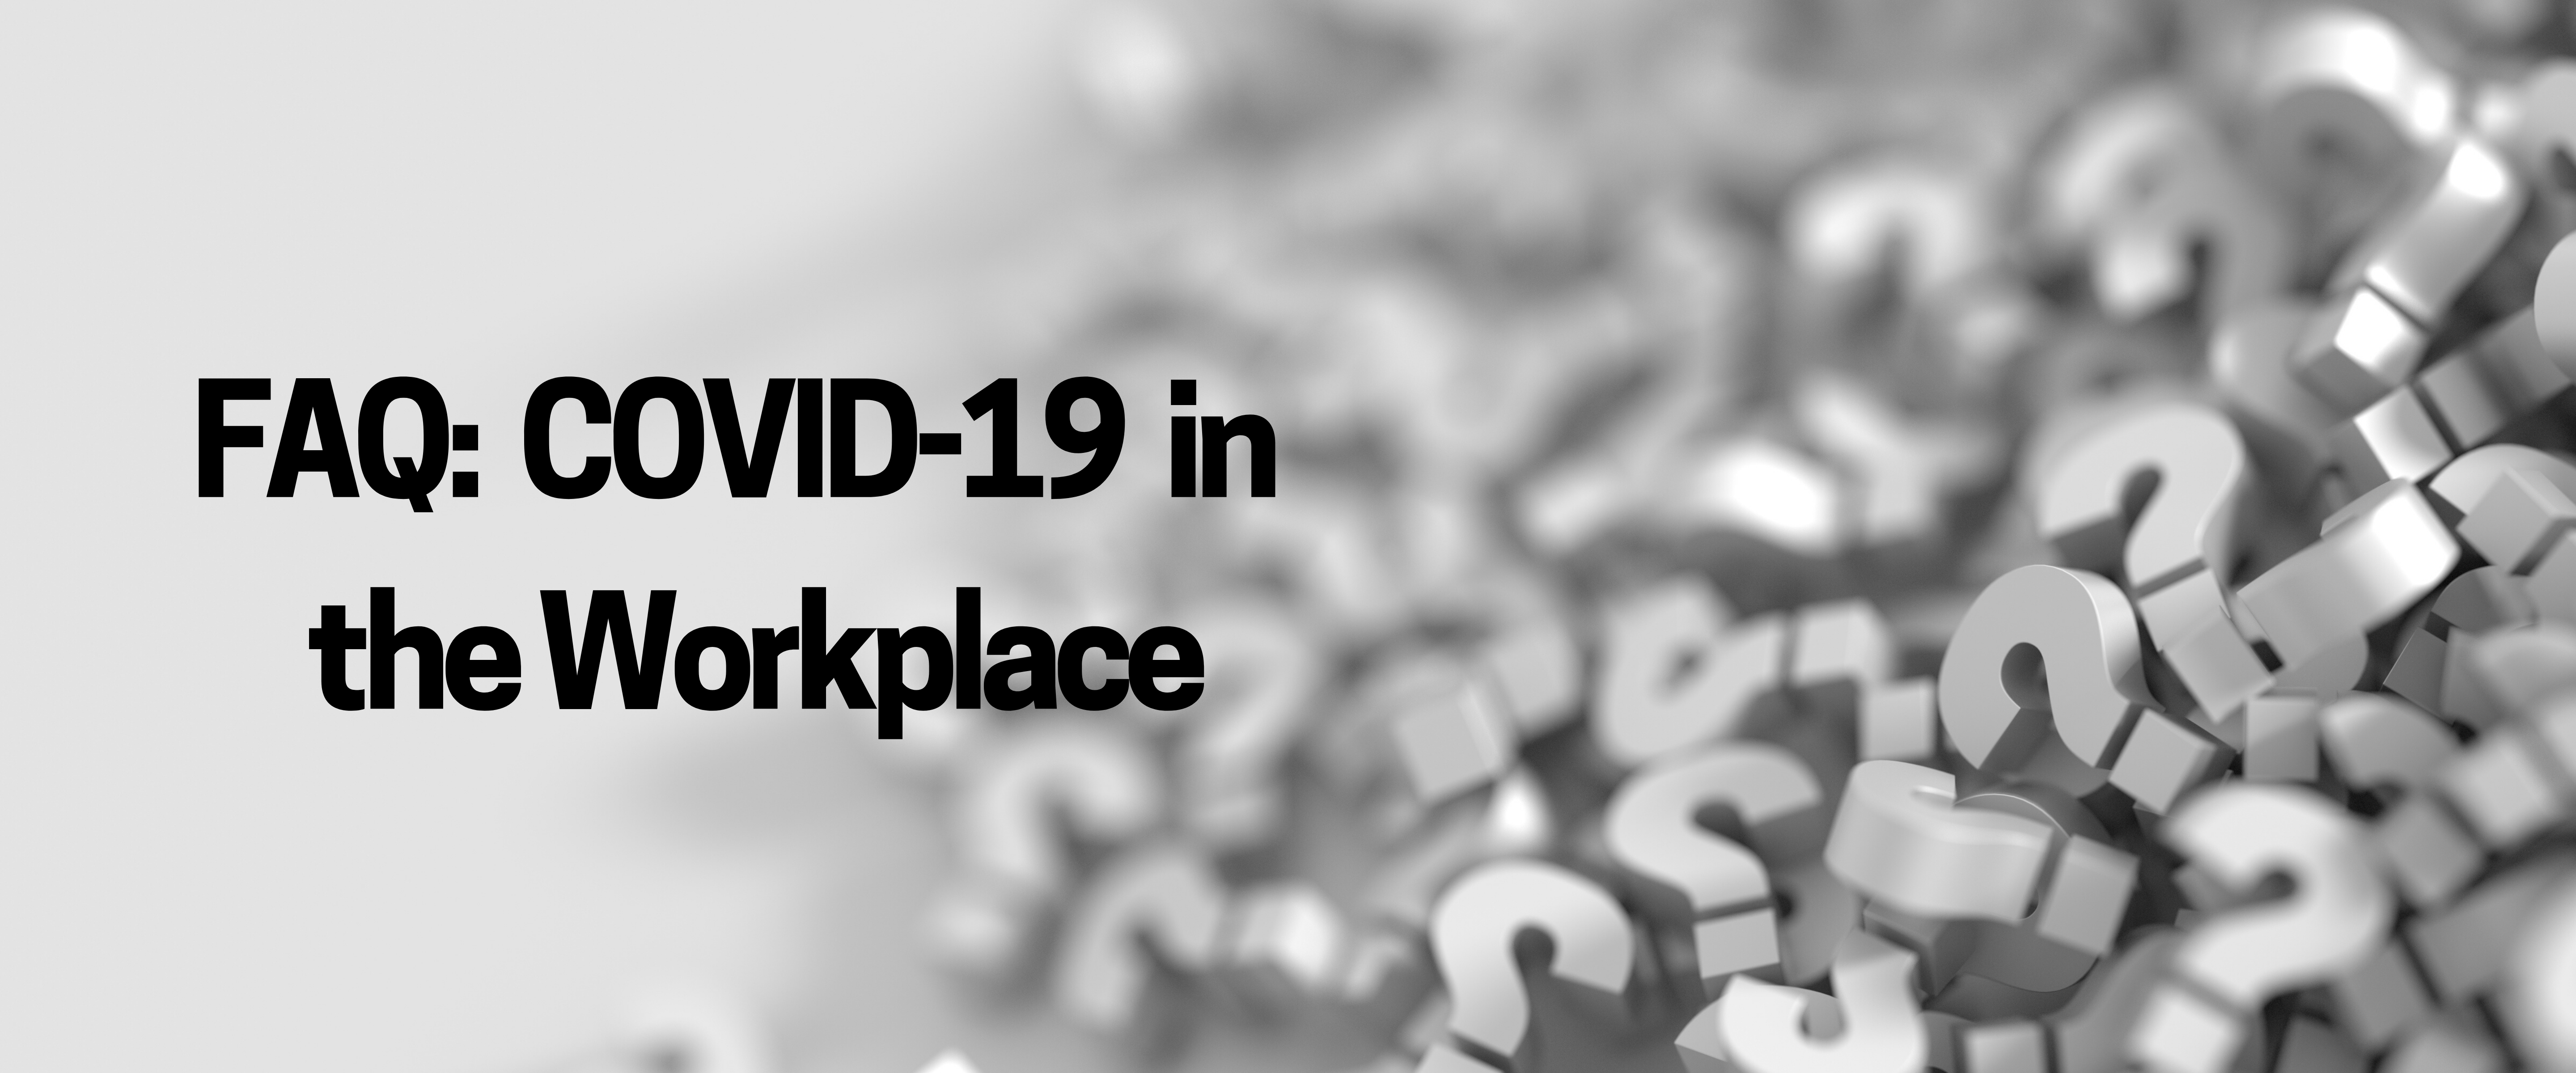 FAQ: COVID-19 in the Workplace